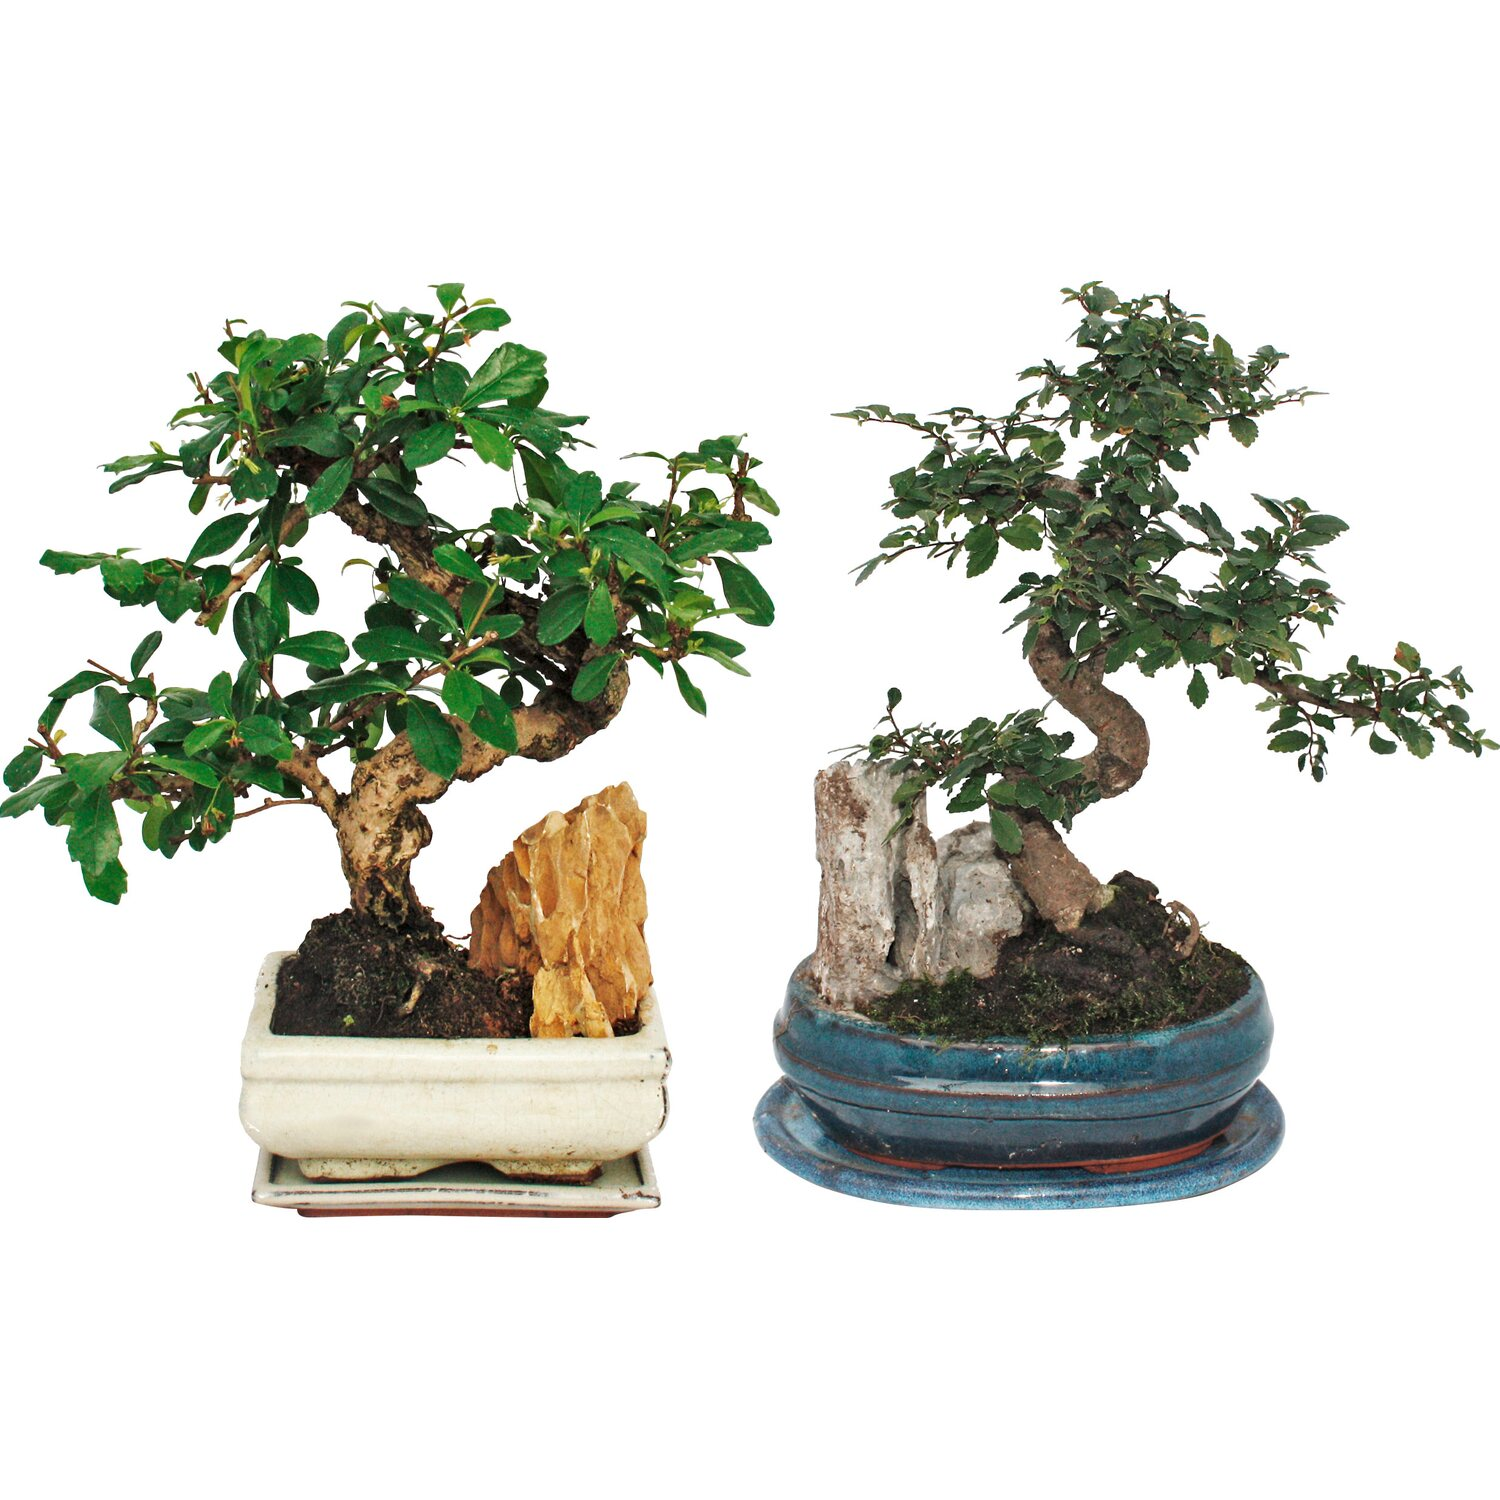 bonsai baum arten bonsai baum kaufen bonsai arten. Black Bedroom Furniture Sets. Home Design Ideas